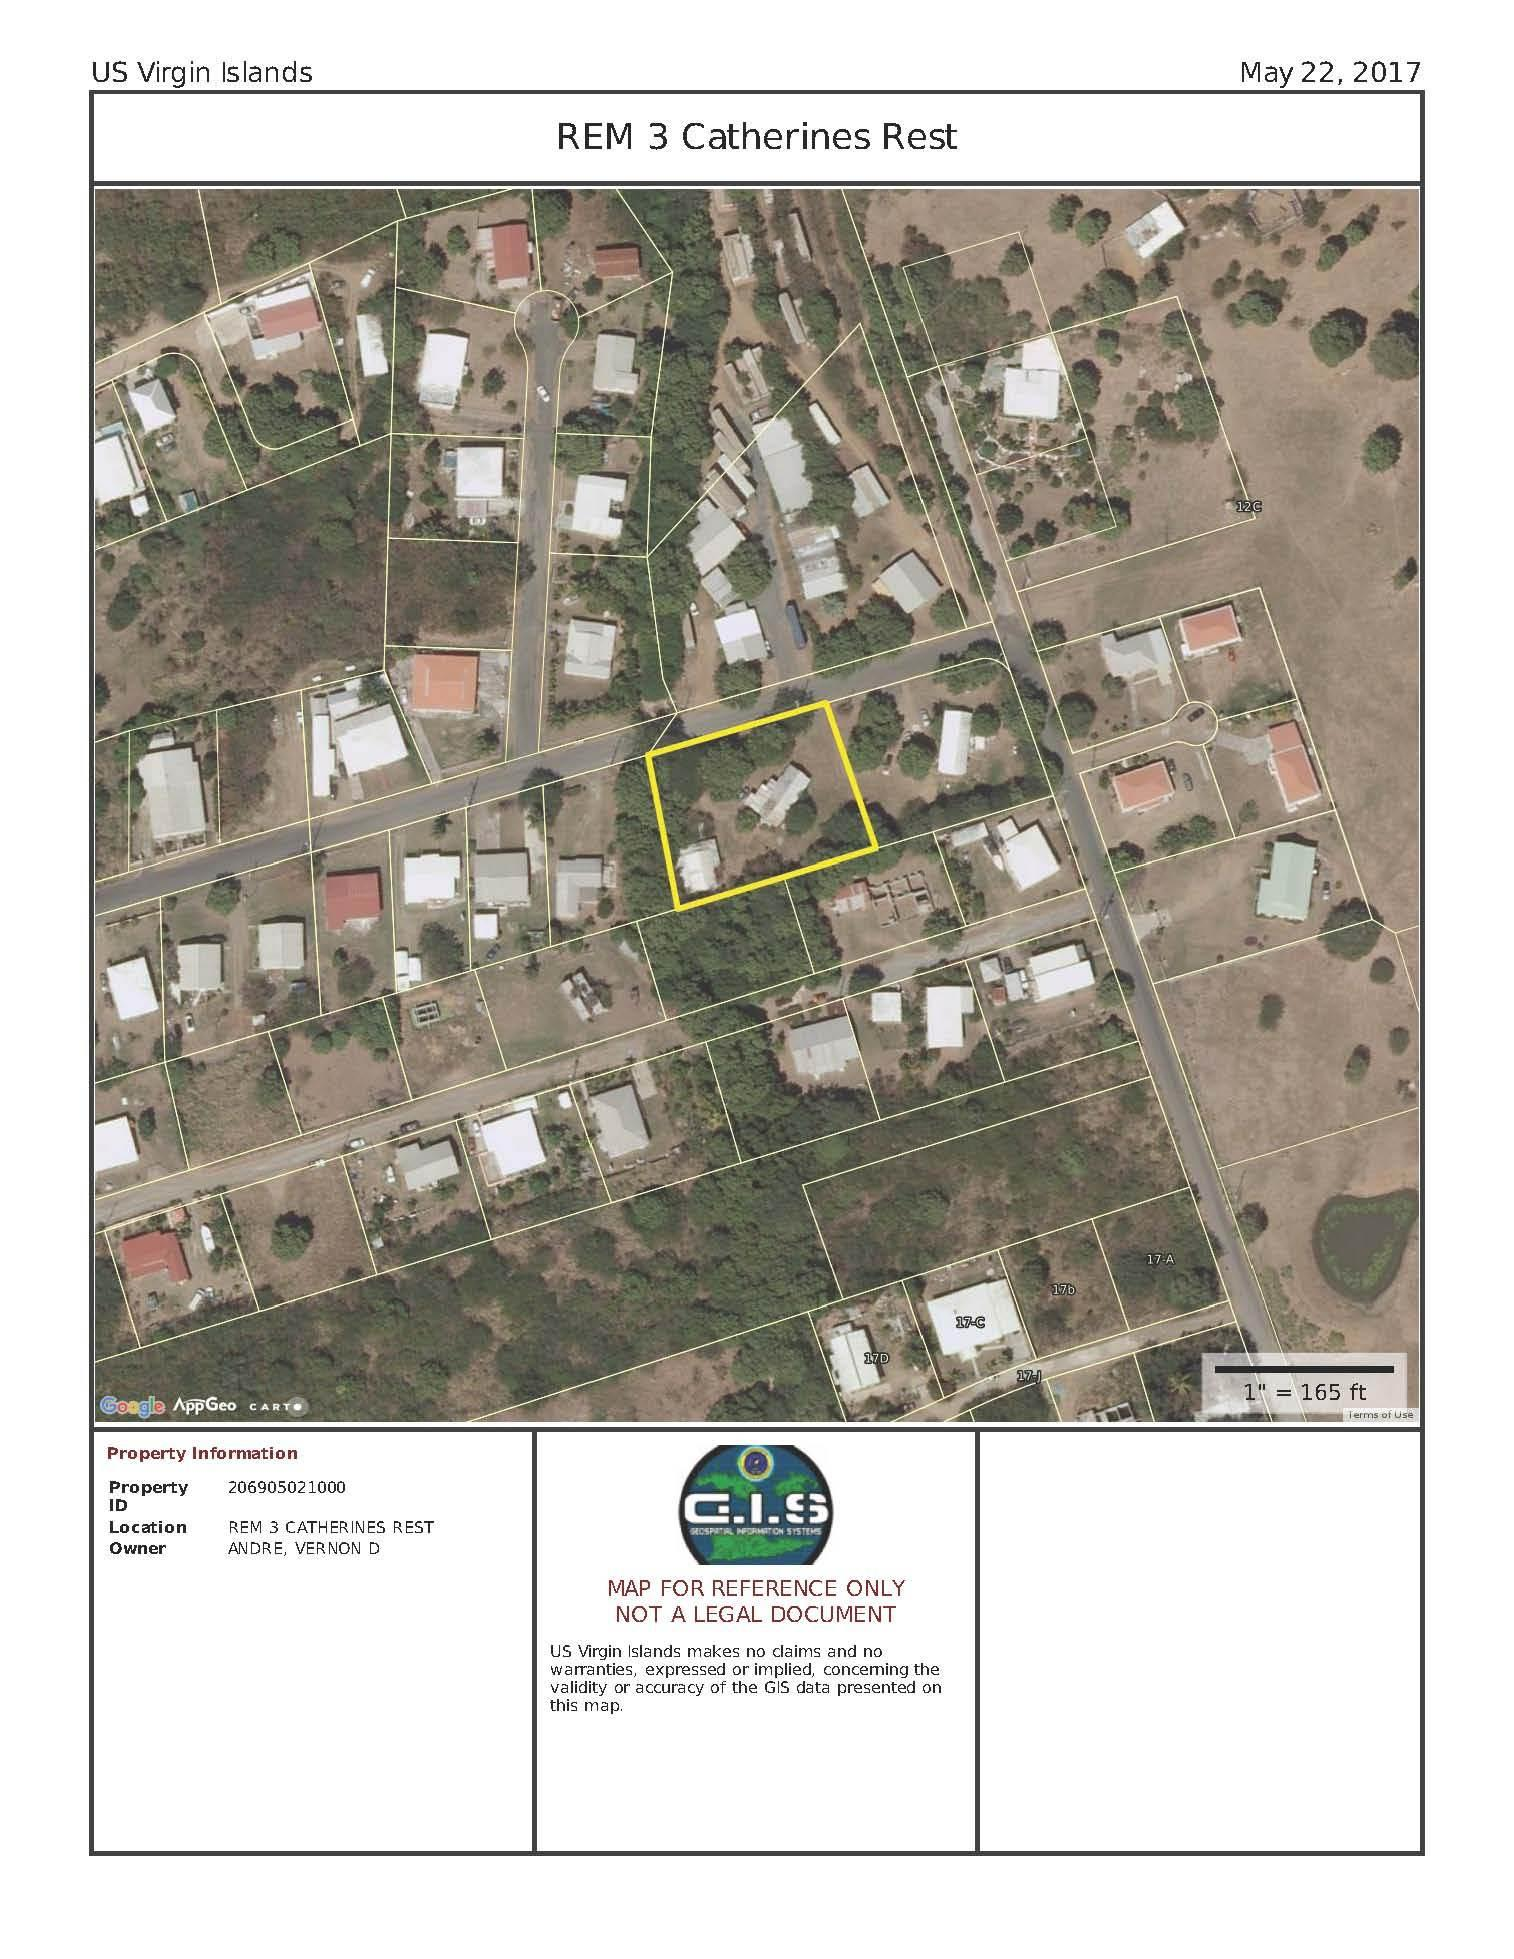 Aerial Map of Property